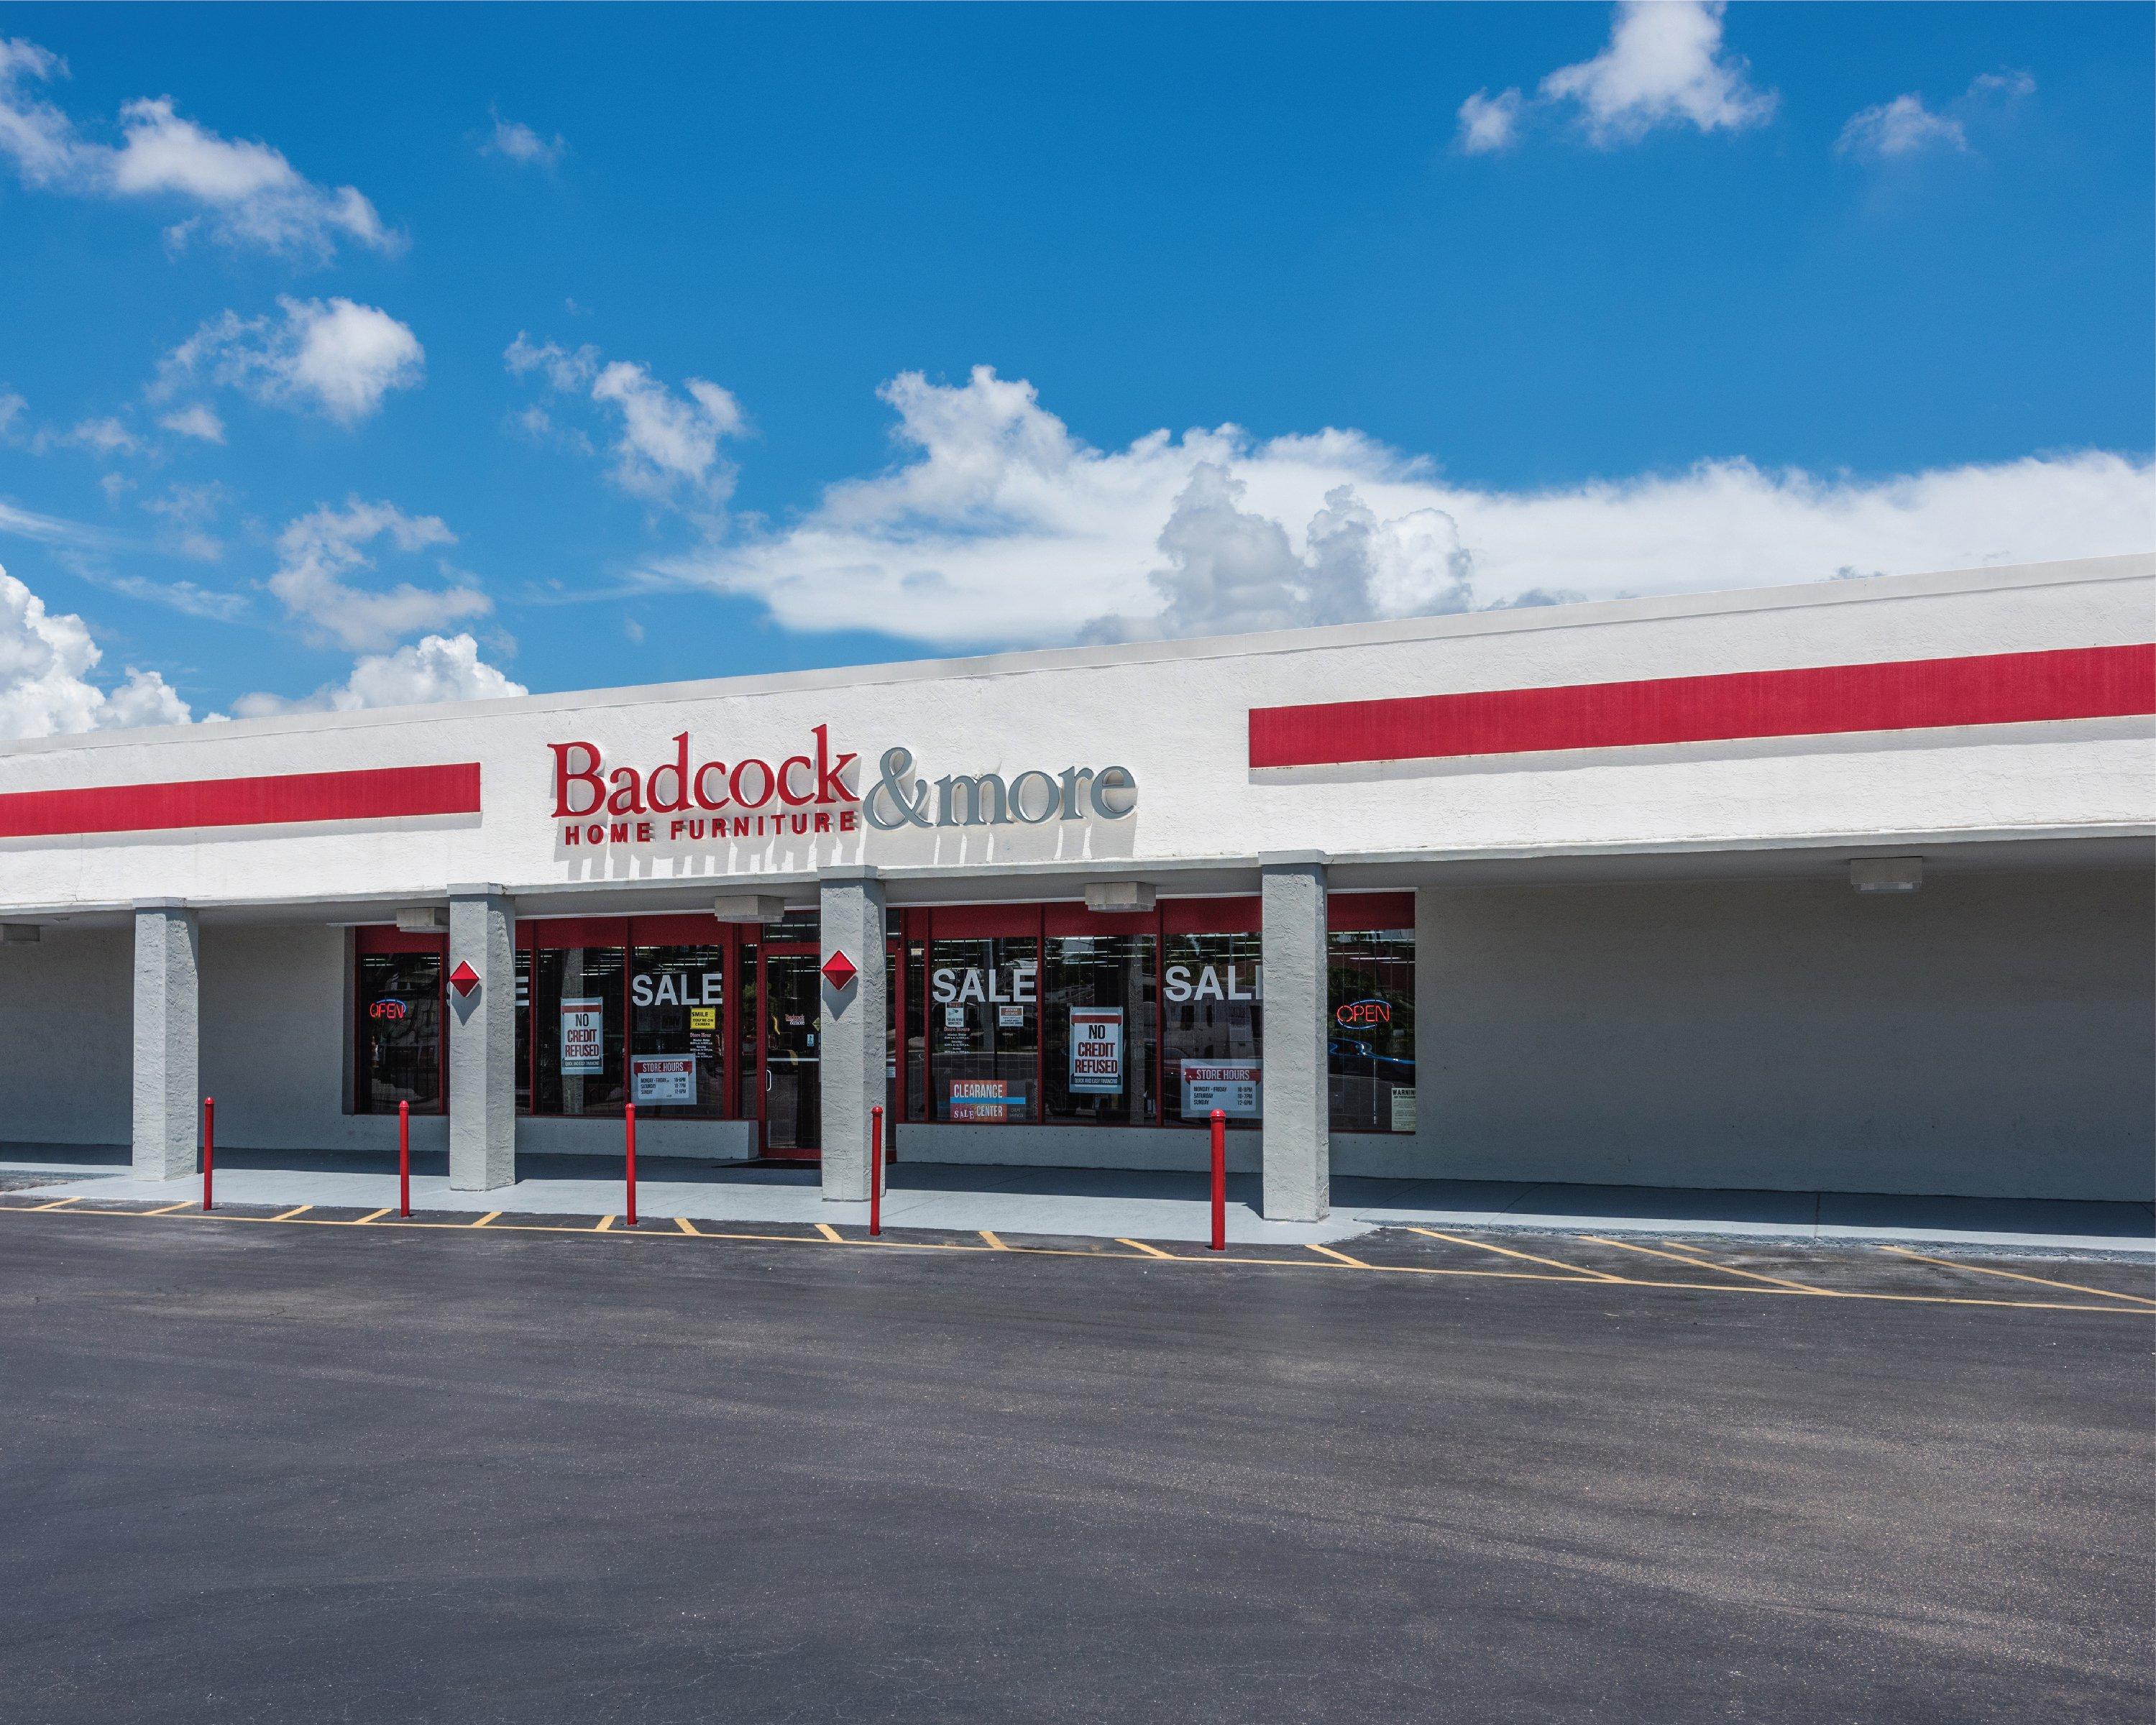 Badcock Home Furniture More Of South Florida 2147 Pembroke Rd Hollywood Fl 33020